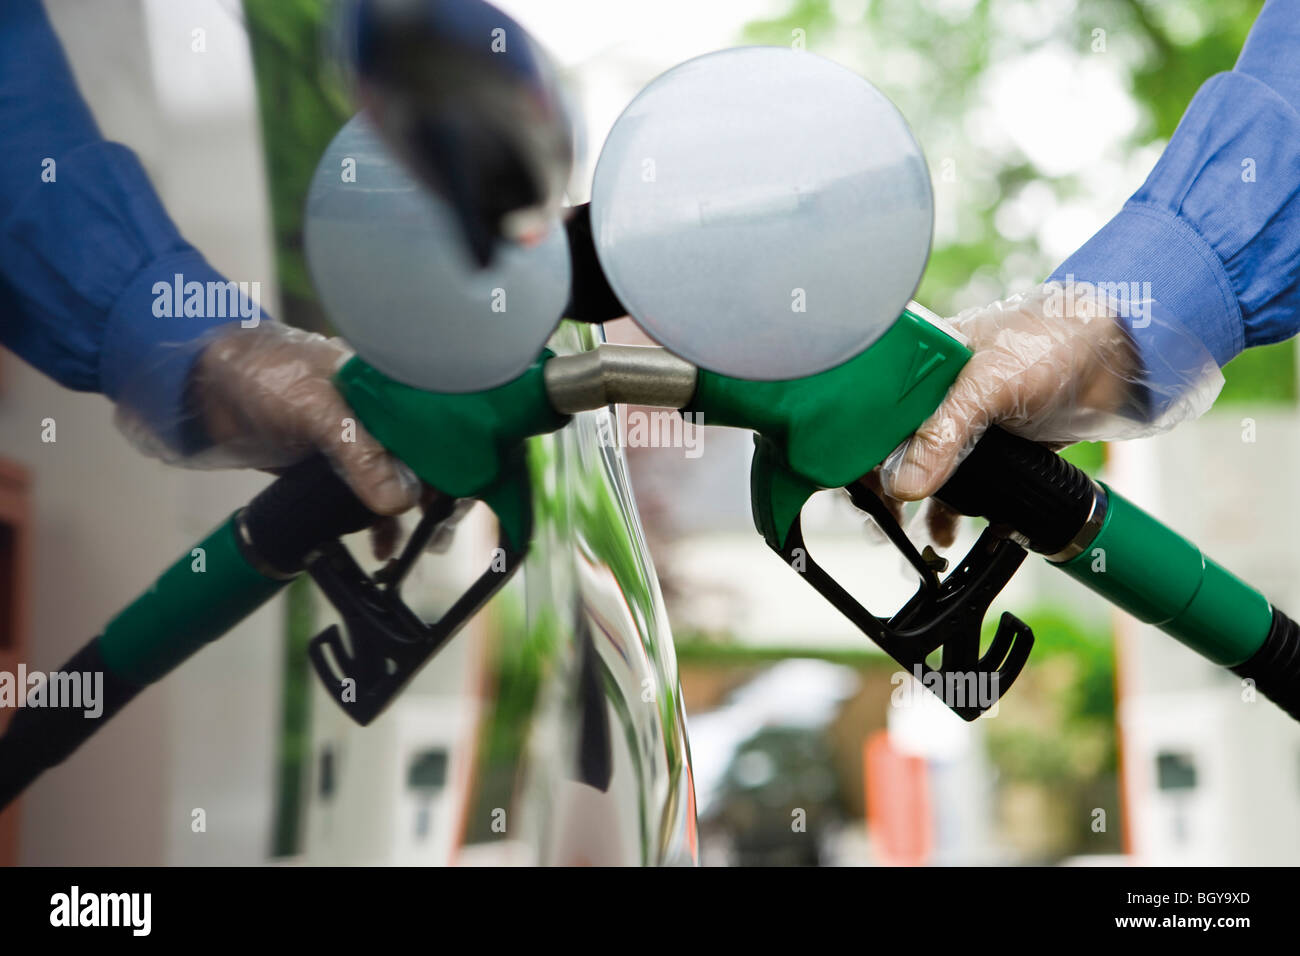 Refueling vehicle at gas station - Stock Image